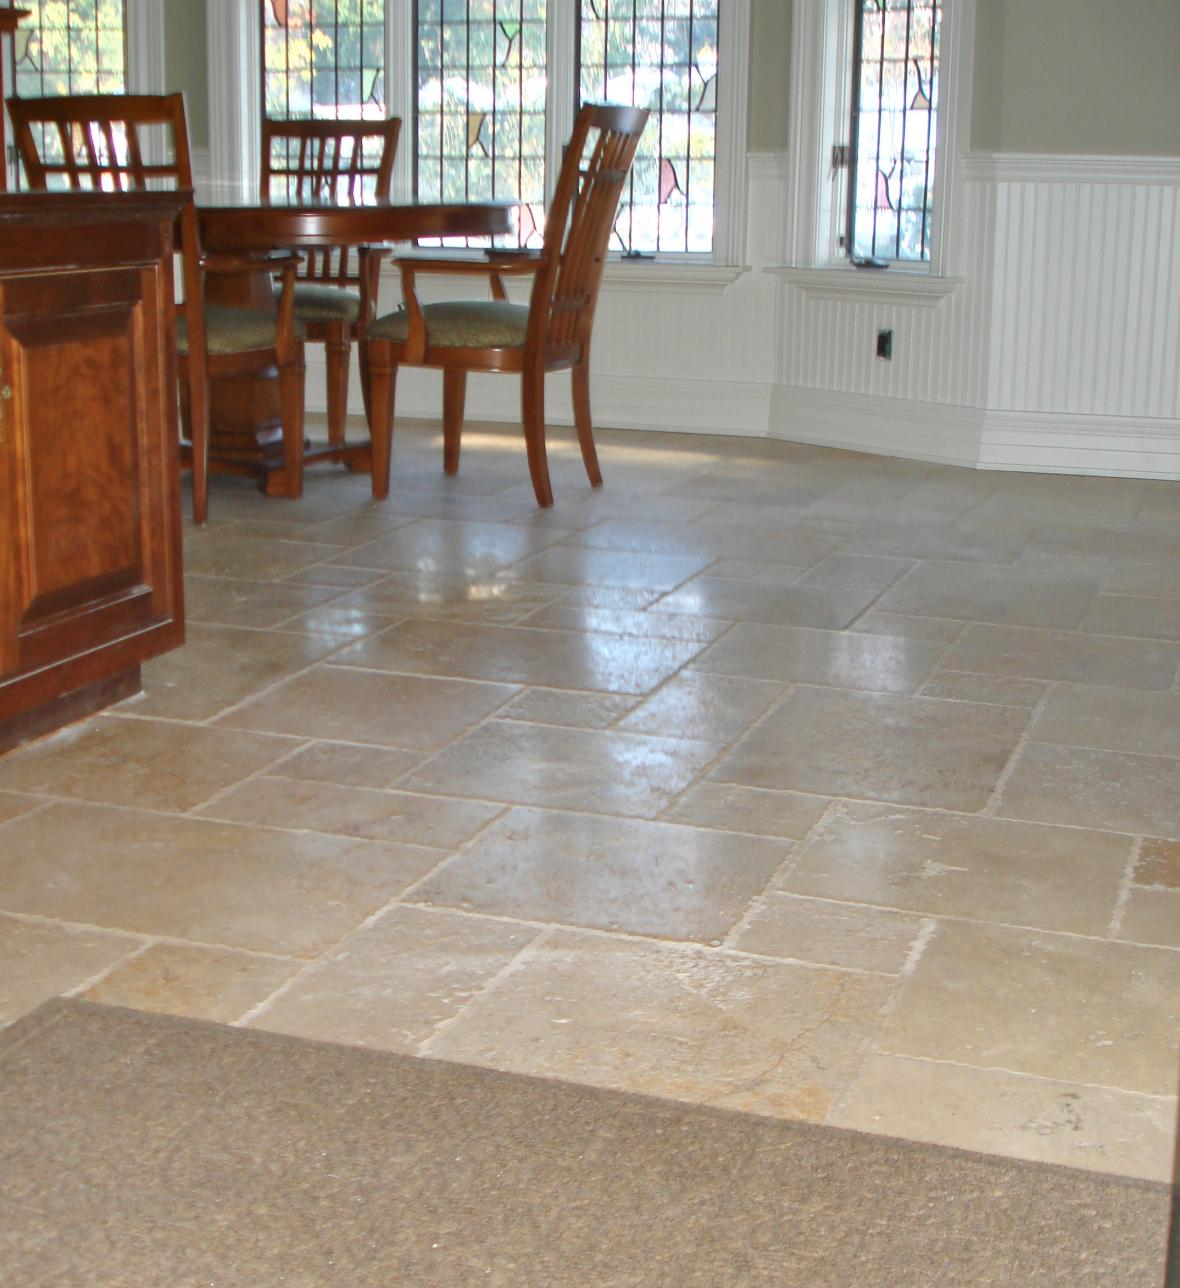 Sandstone Kitchen Floor Tiles Tile Floor White Tile Floor Texture Design Awesome Kitchen